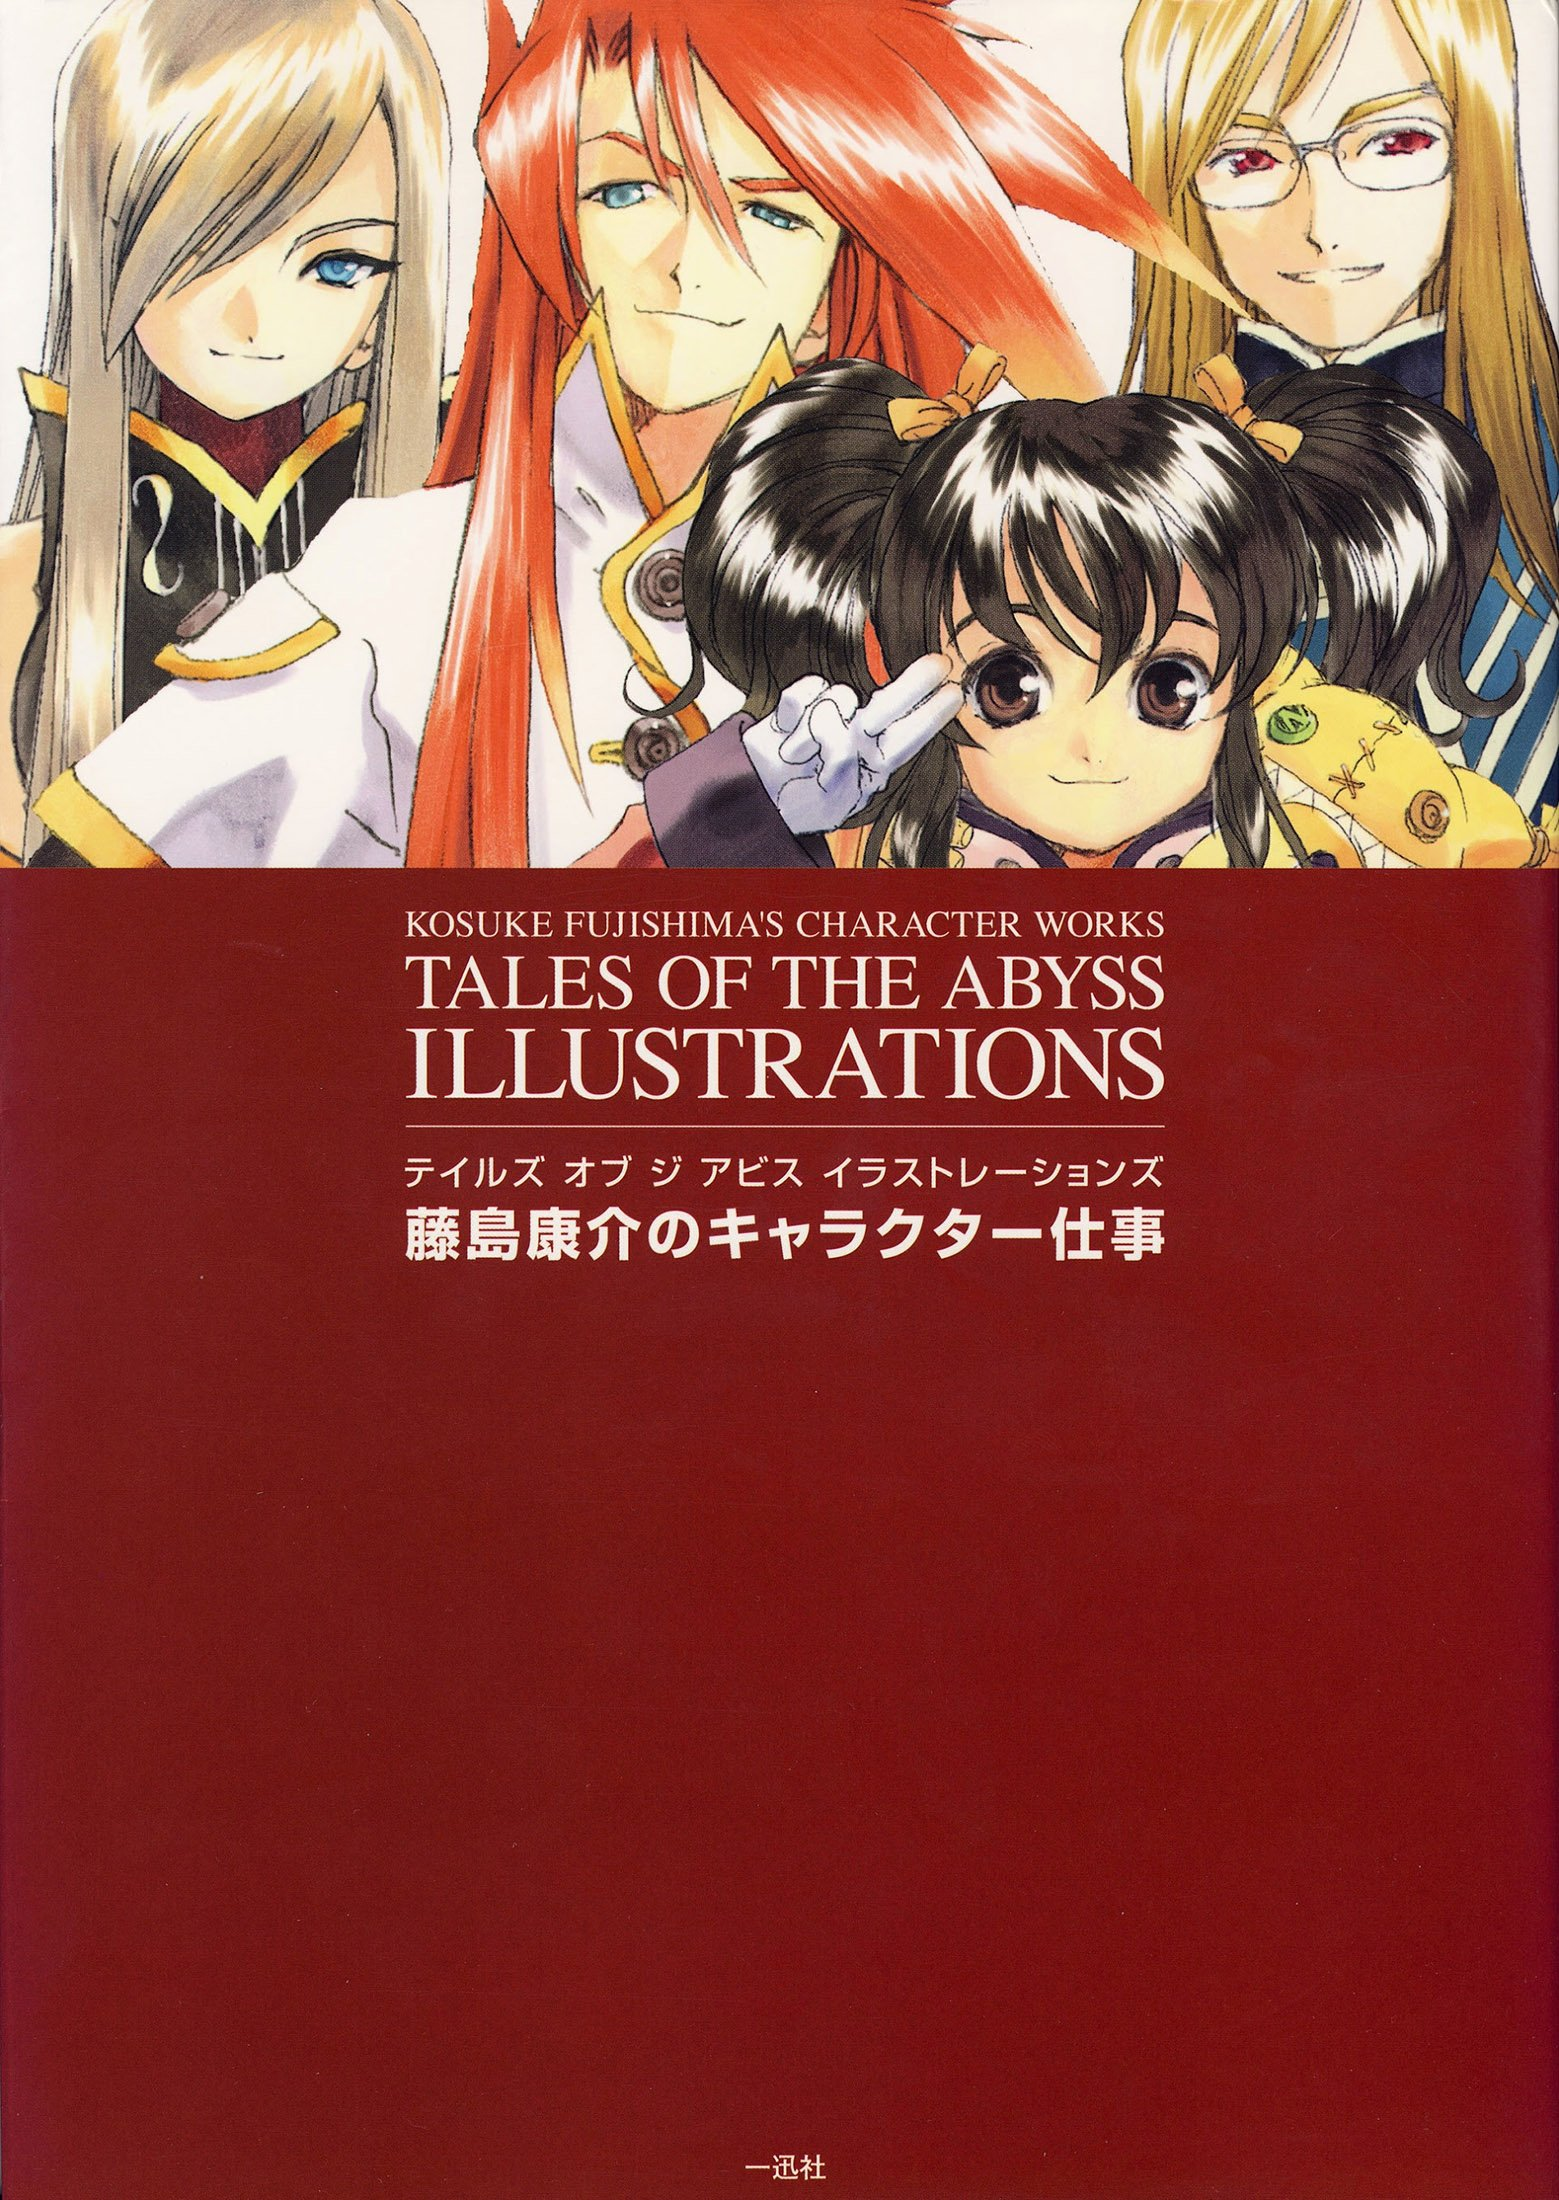 Tales of the Abyss Illustrations - Kosuke Fujishima's Character Works